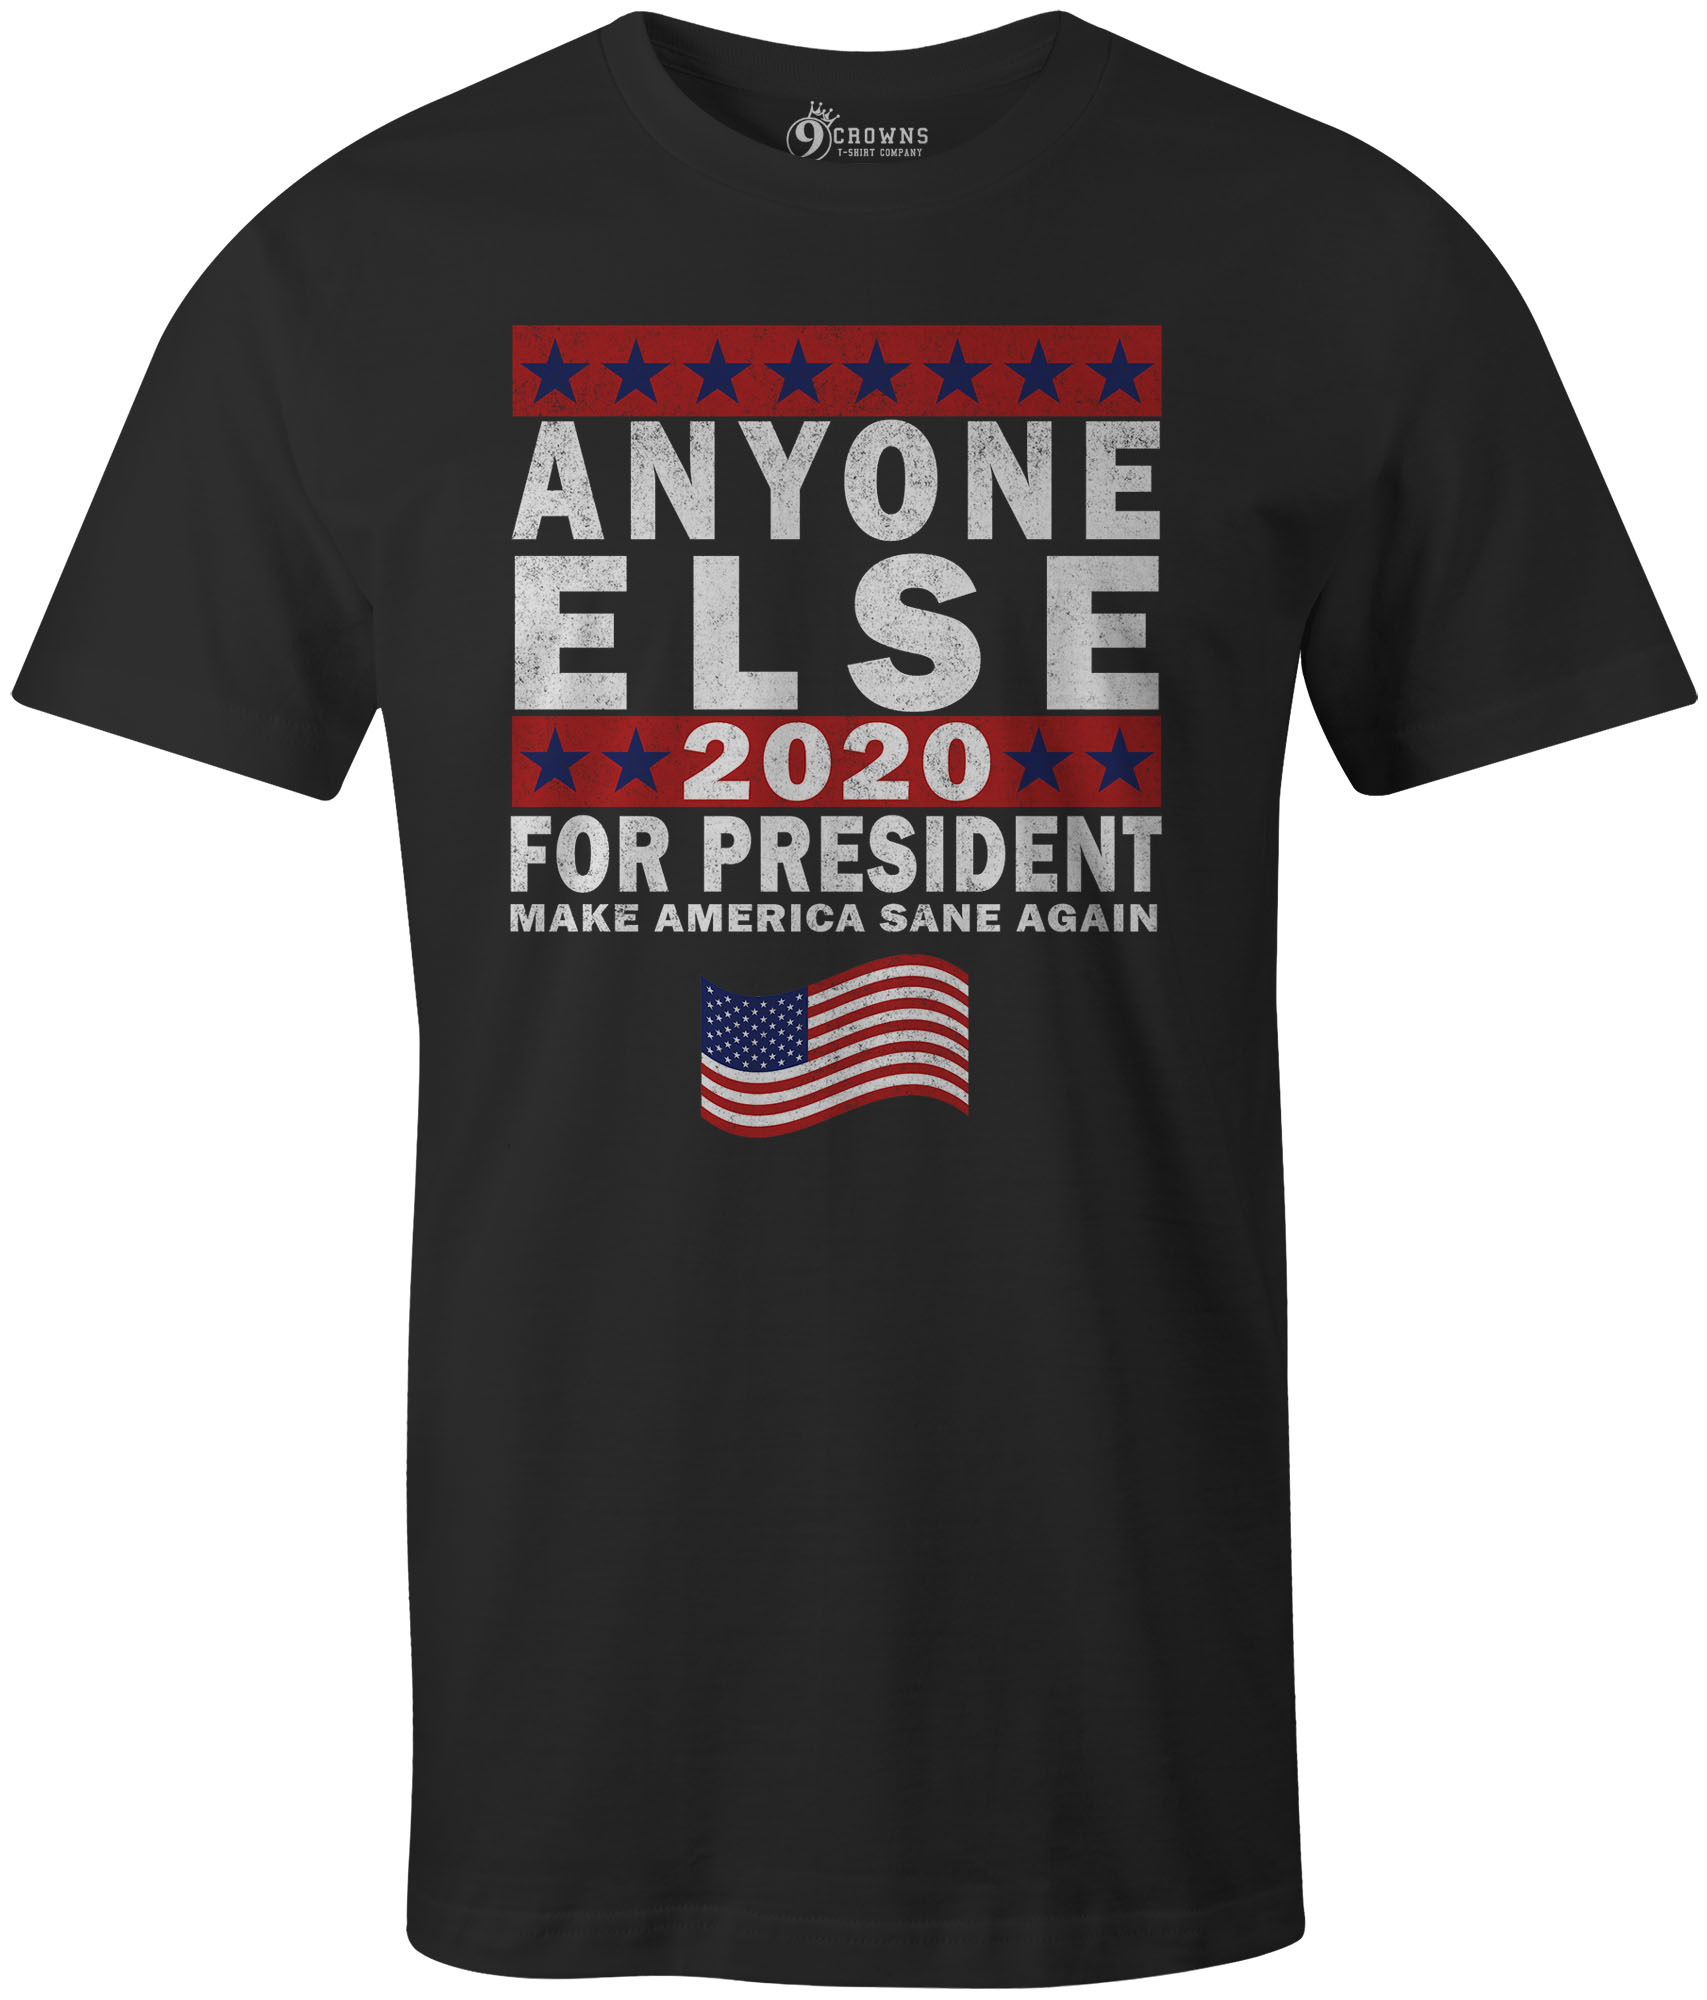 82f8bac6 9 Crowns Tees Men's Anyone Else For President Funny Sarcastic T-Shirt